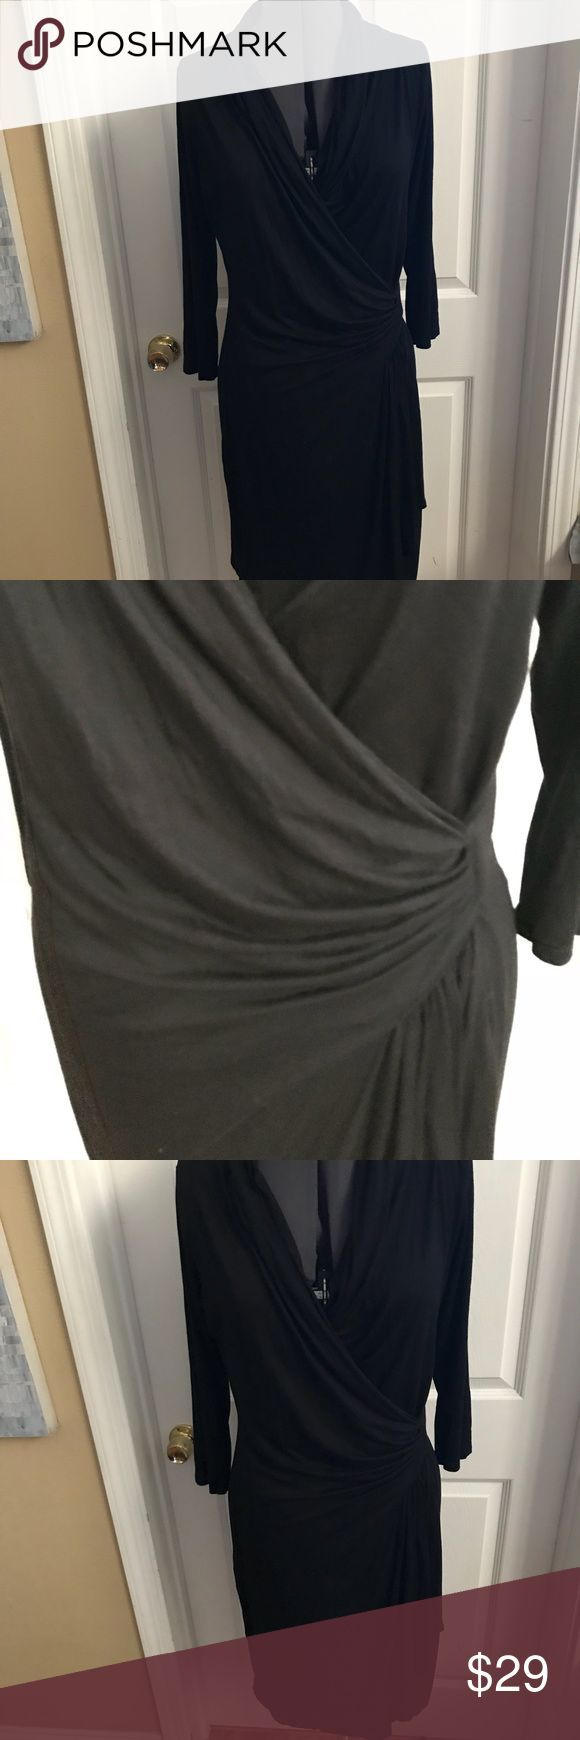 Karen Kane faux wrap black long sleeve dress sz L Karen Kane faux wrap black long sleeve dress sz L Karen Kane Dresses Midi